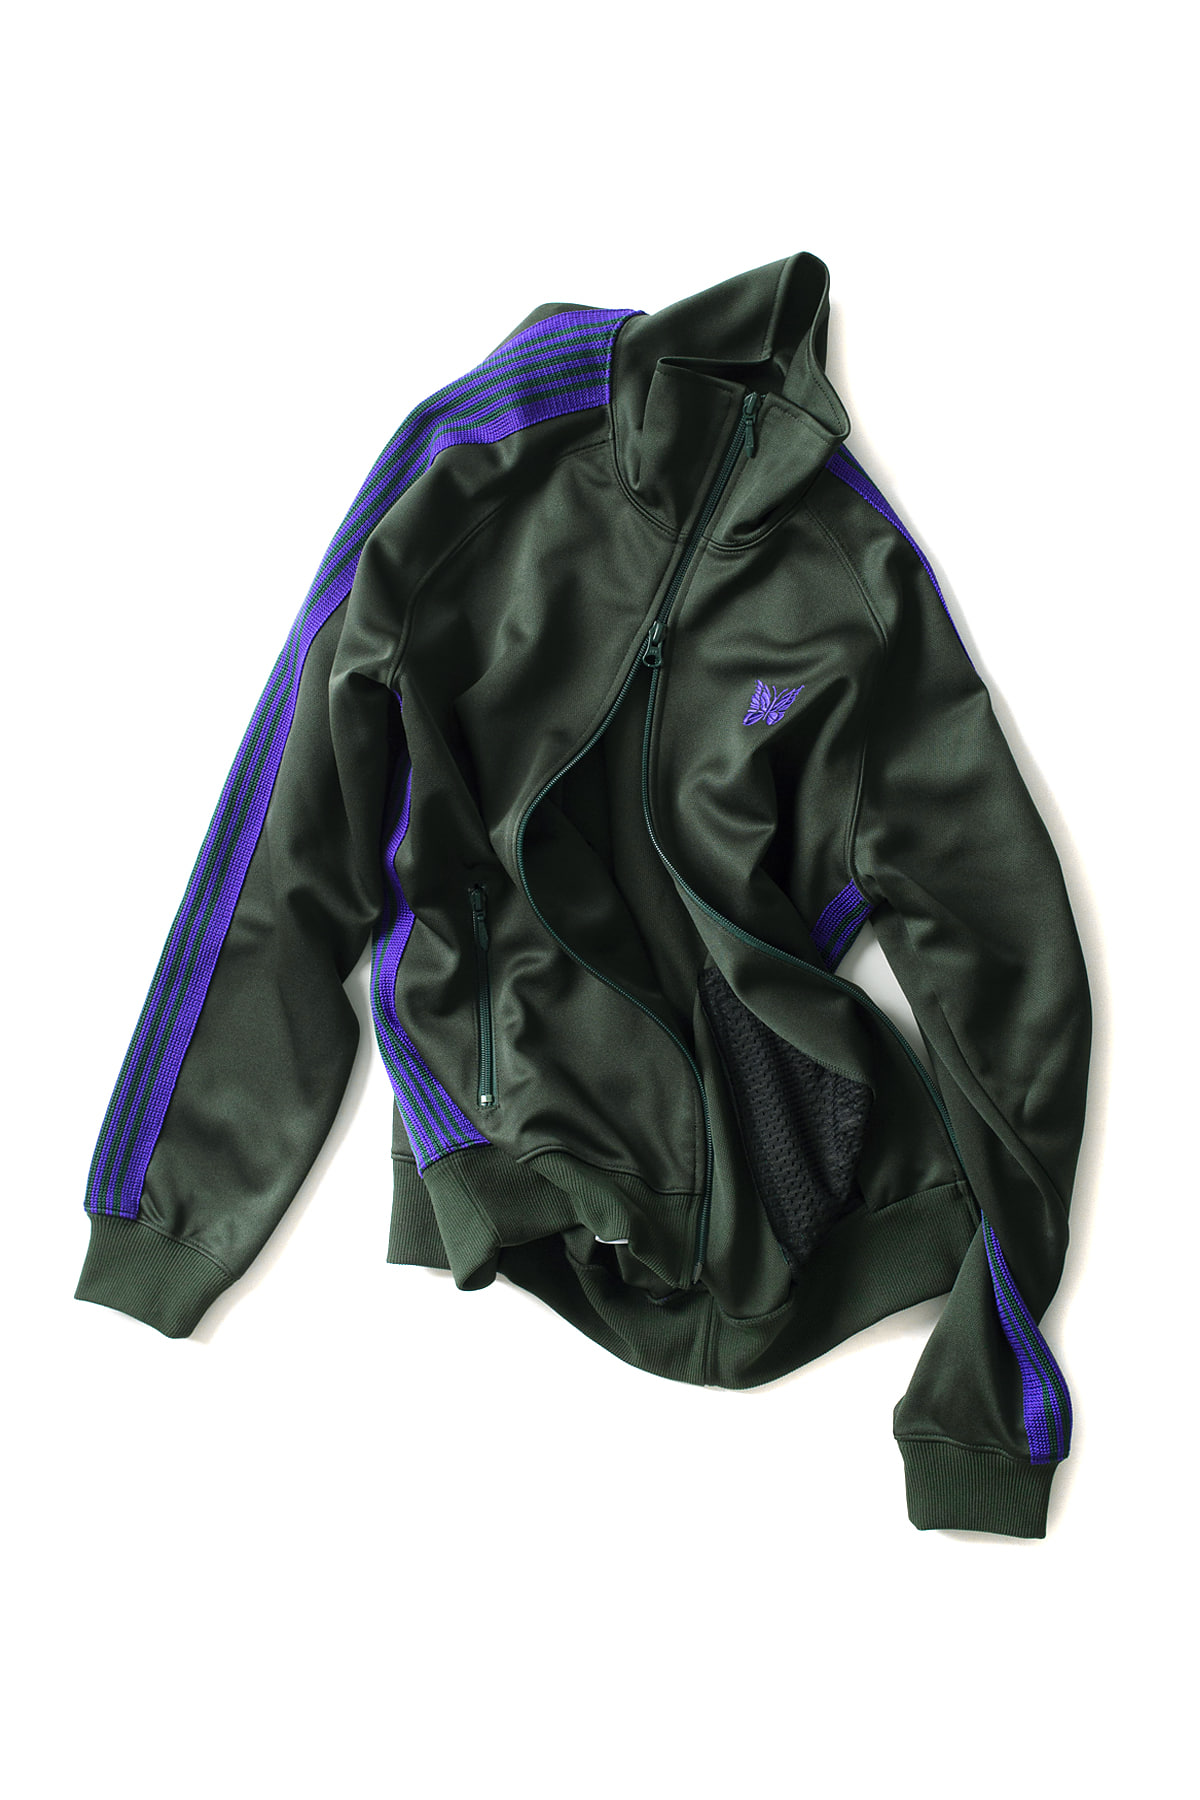 NEEDLES : Poly Smooth Narrow Track Jacket (Green)